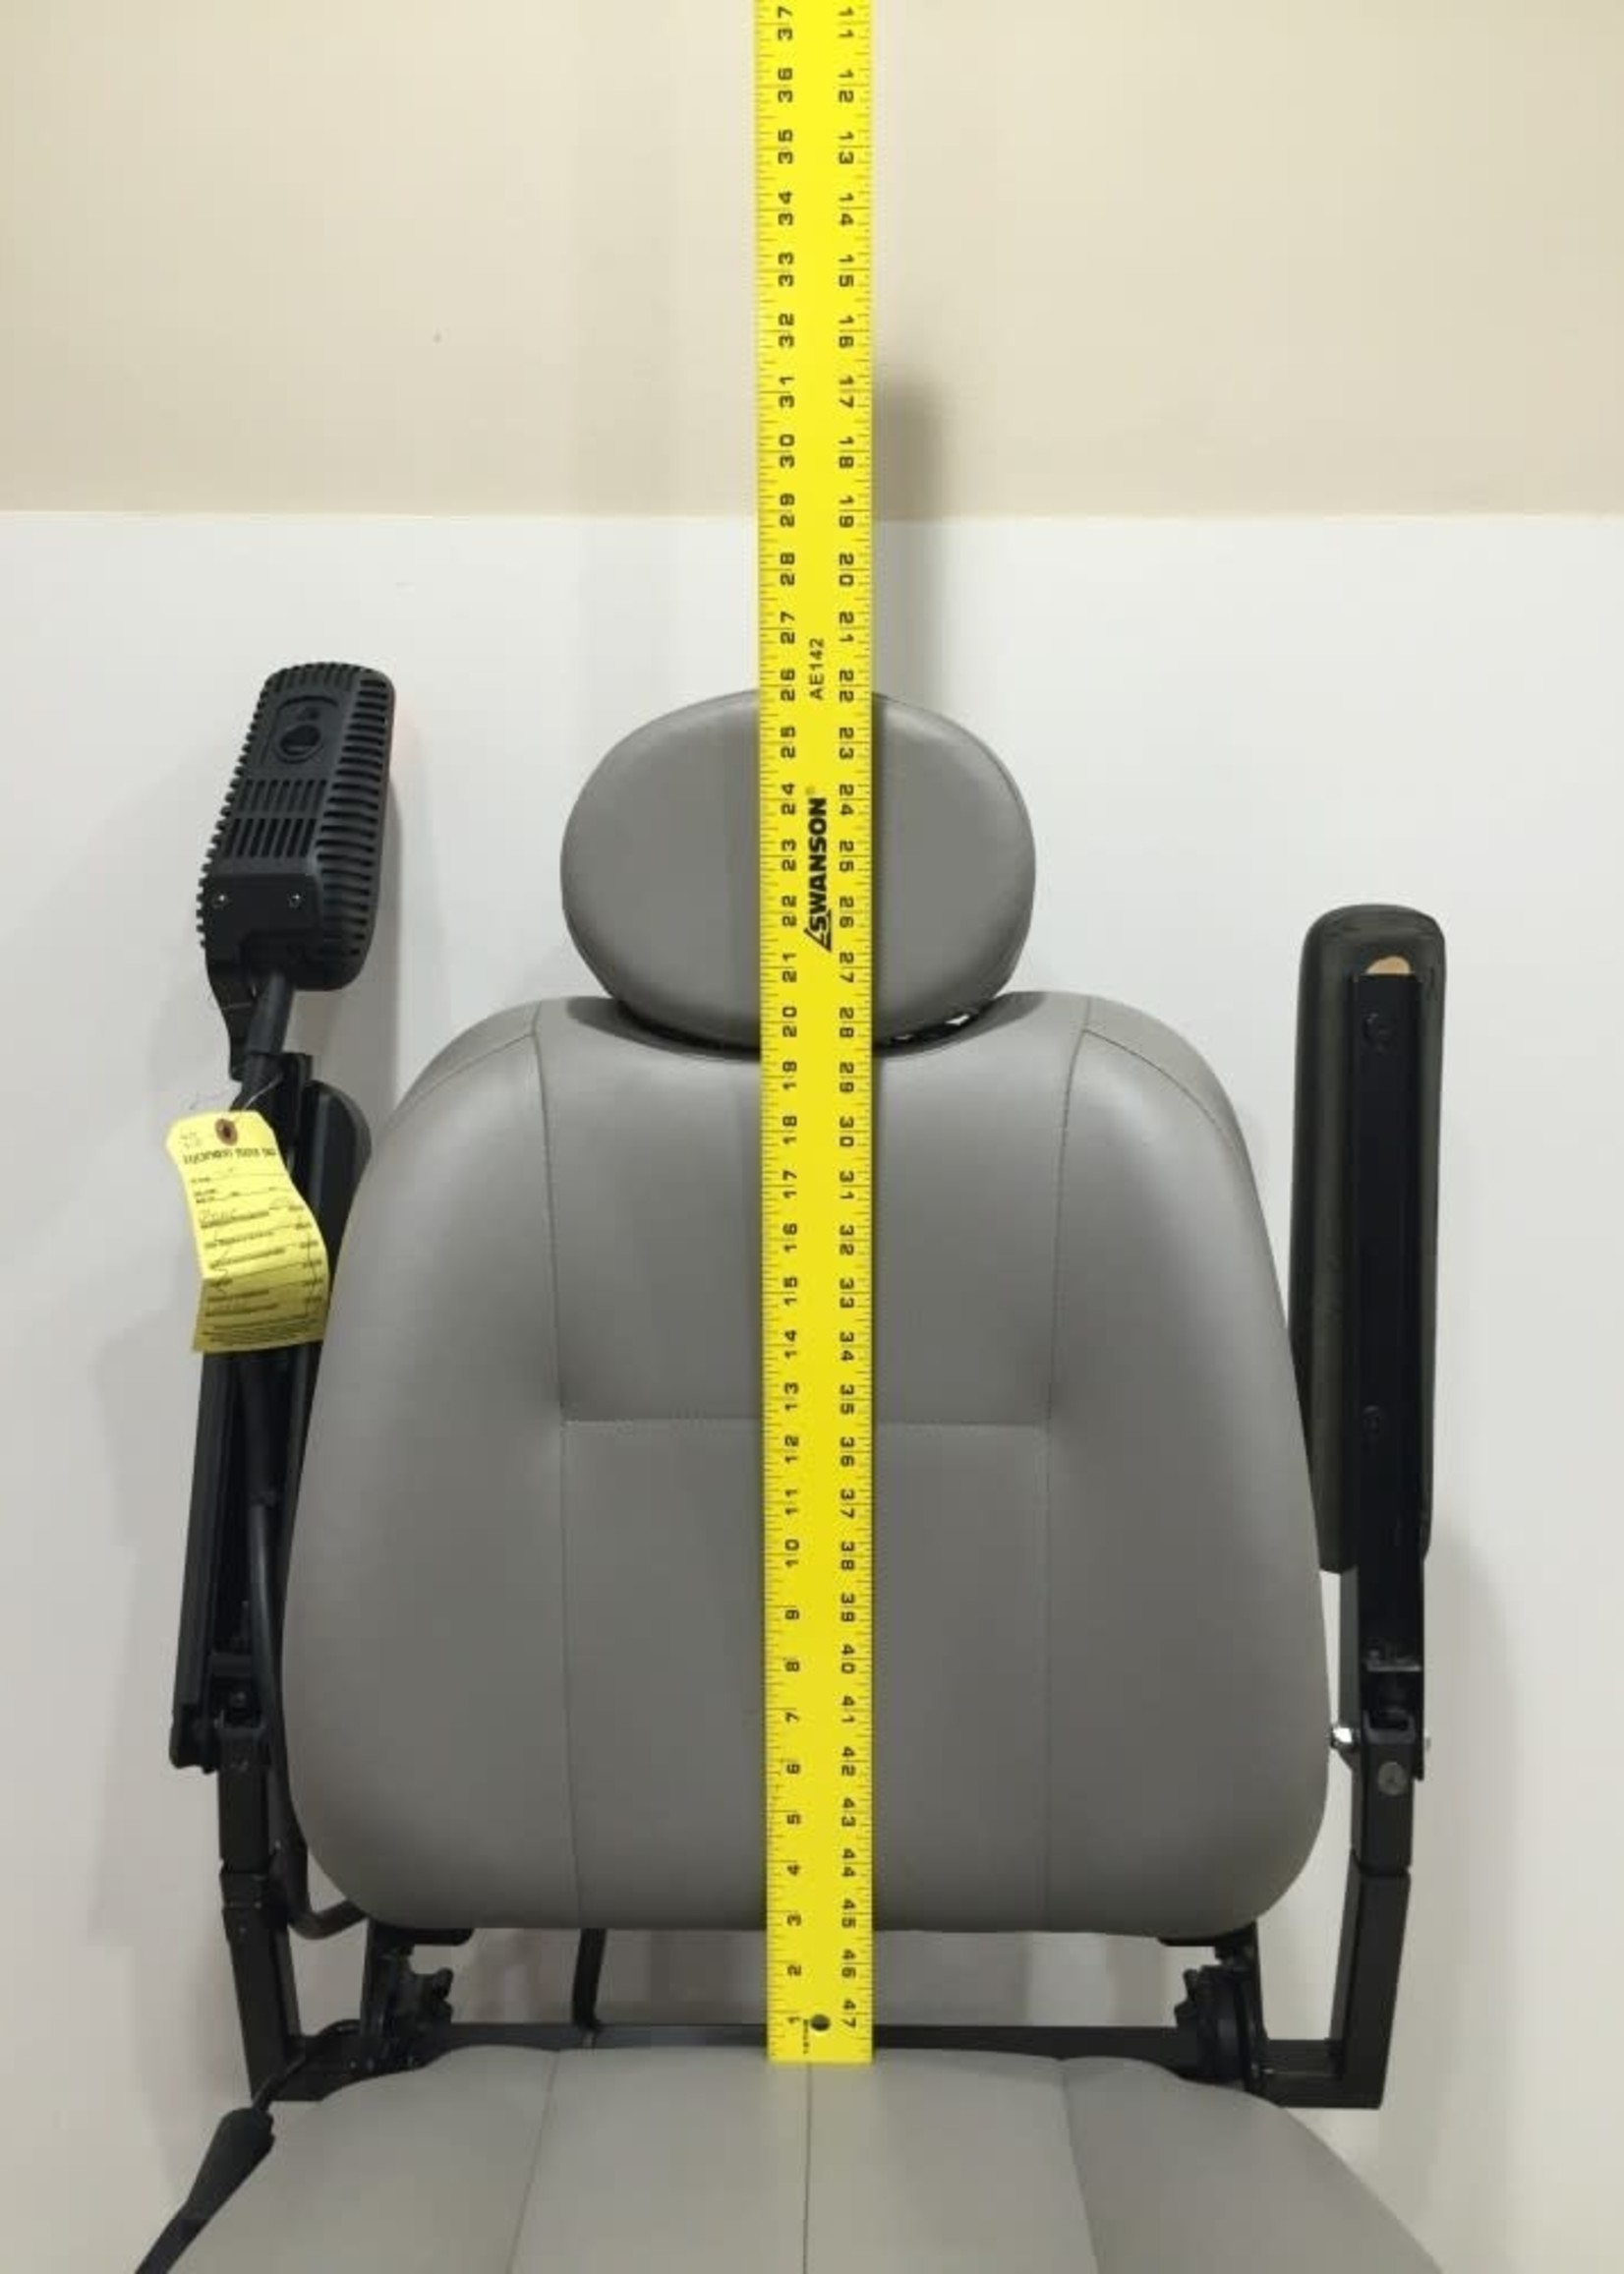 Pride Mobility Pride Jet 3 Ultra Electric Wheelchair (Used)